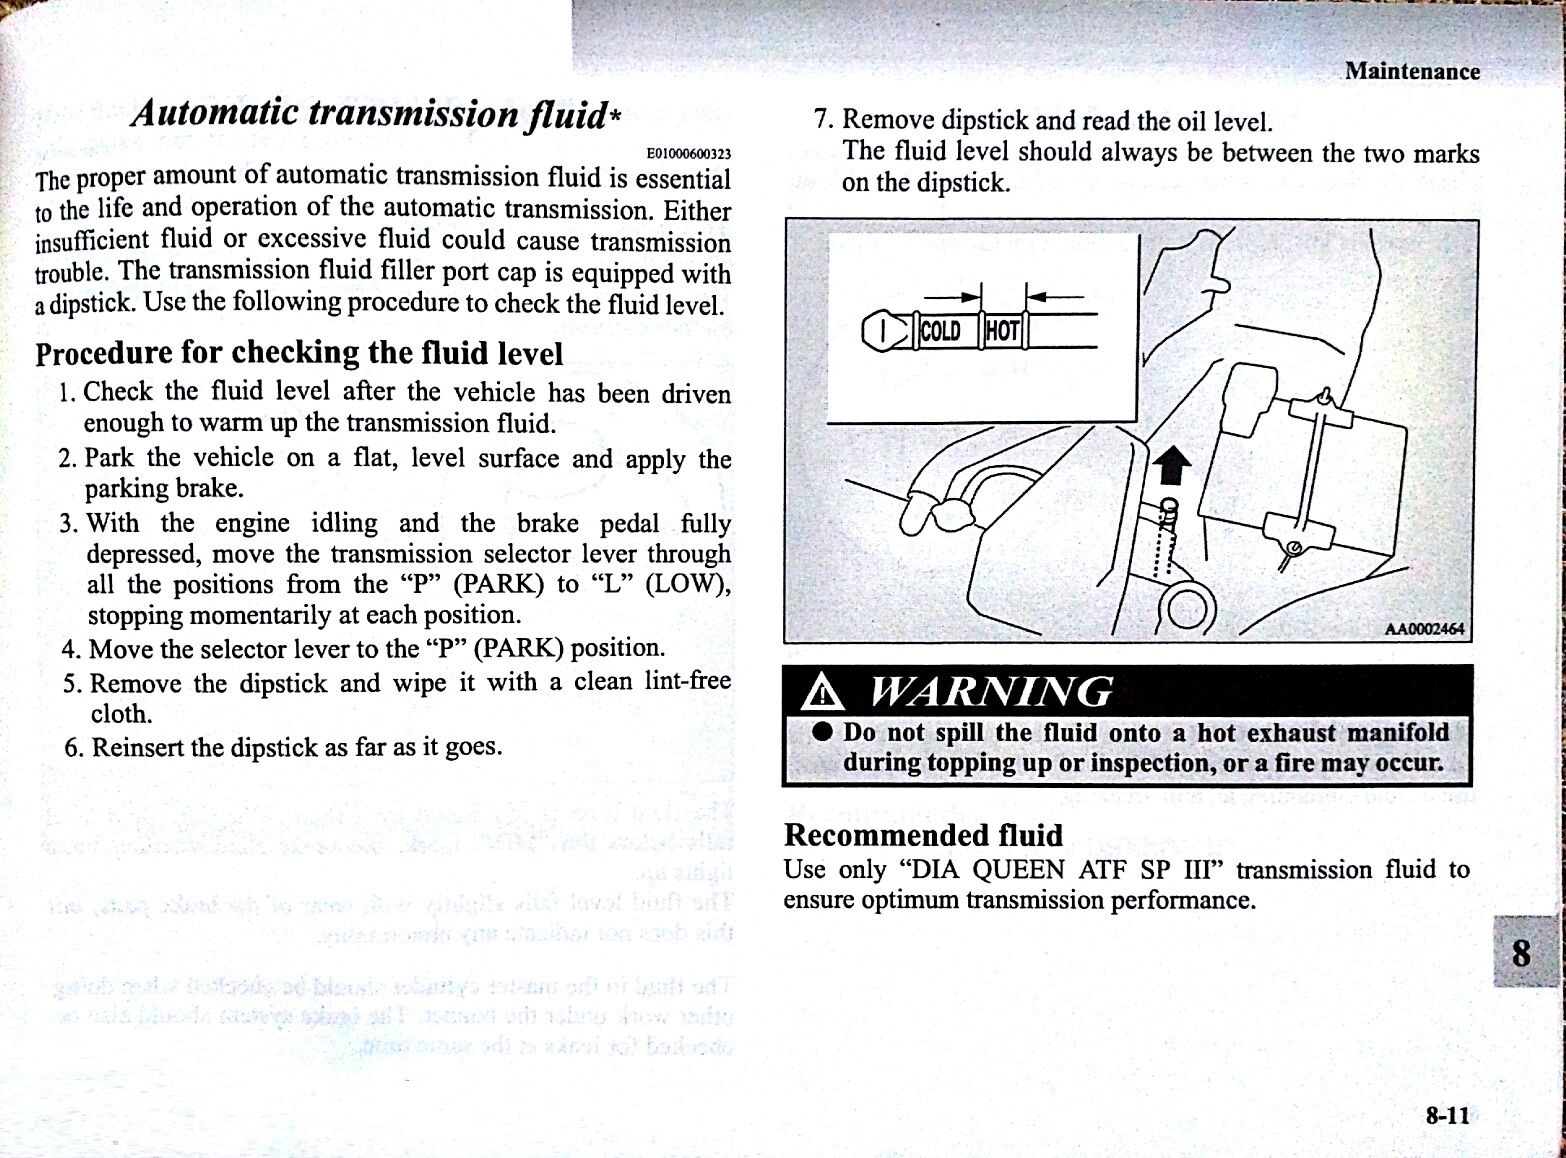 Mitsubishi Lancer Owner's Manual